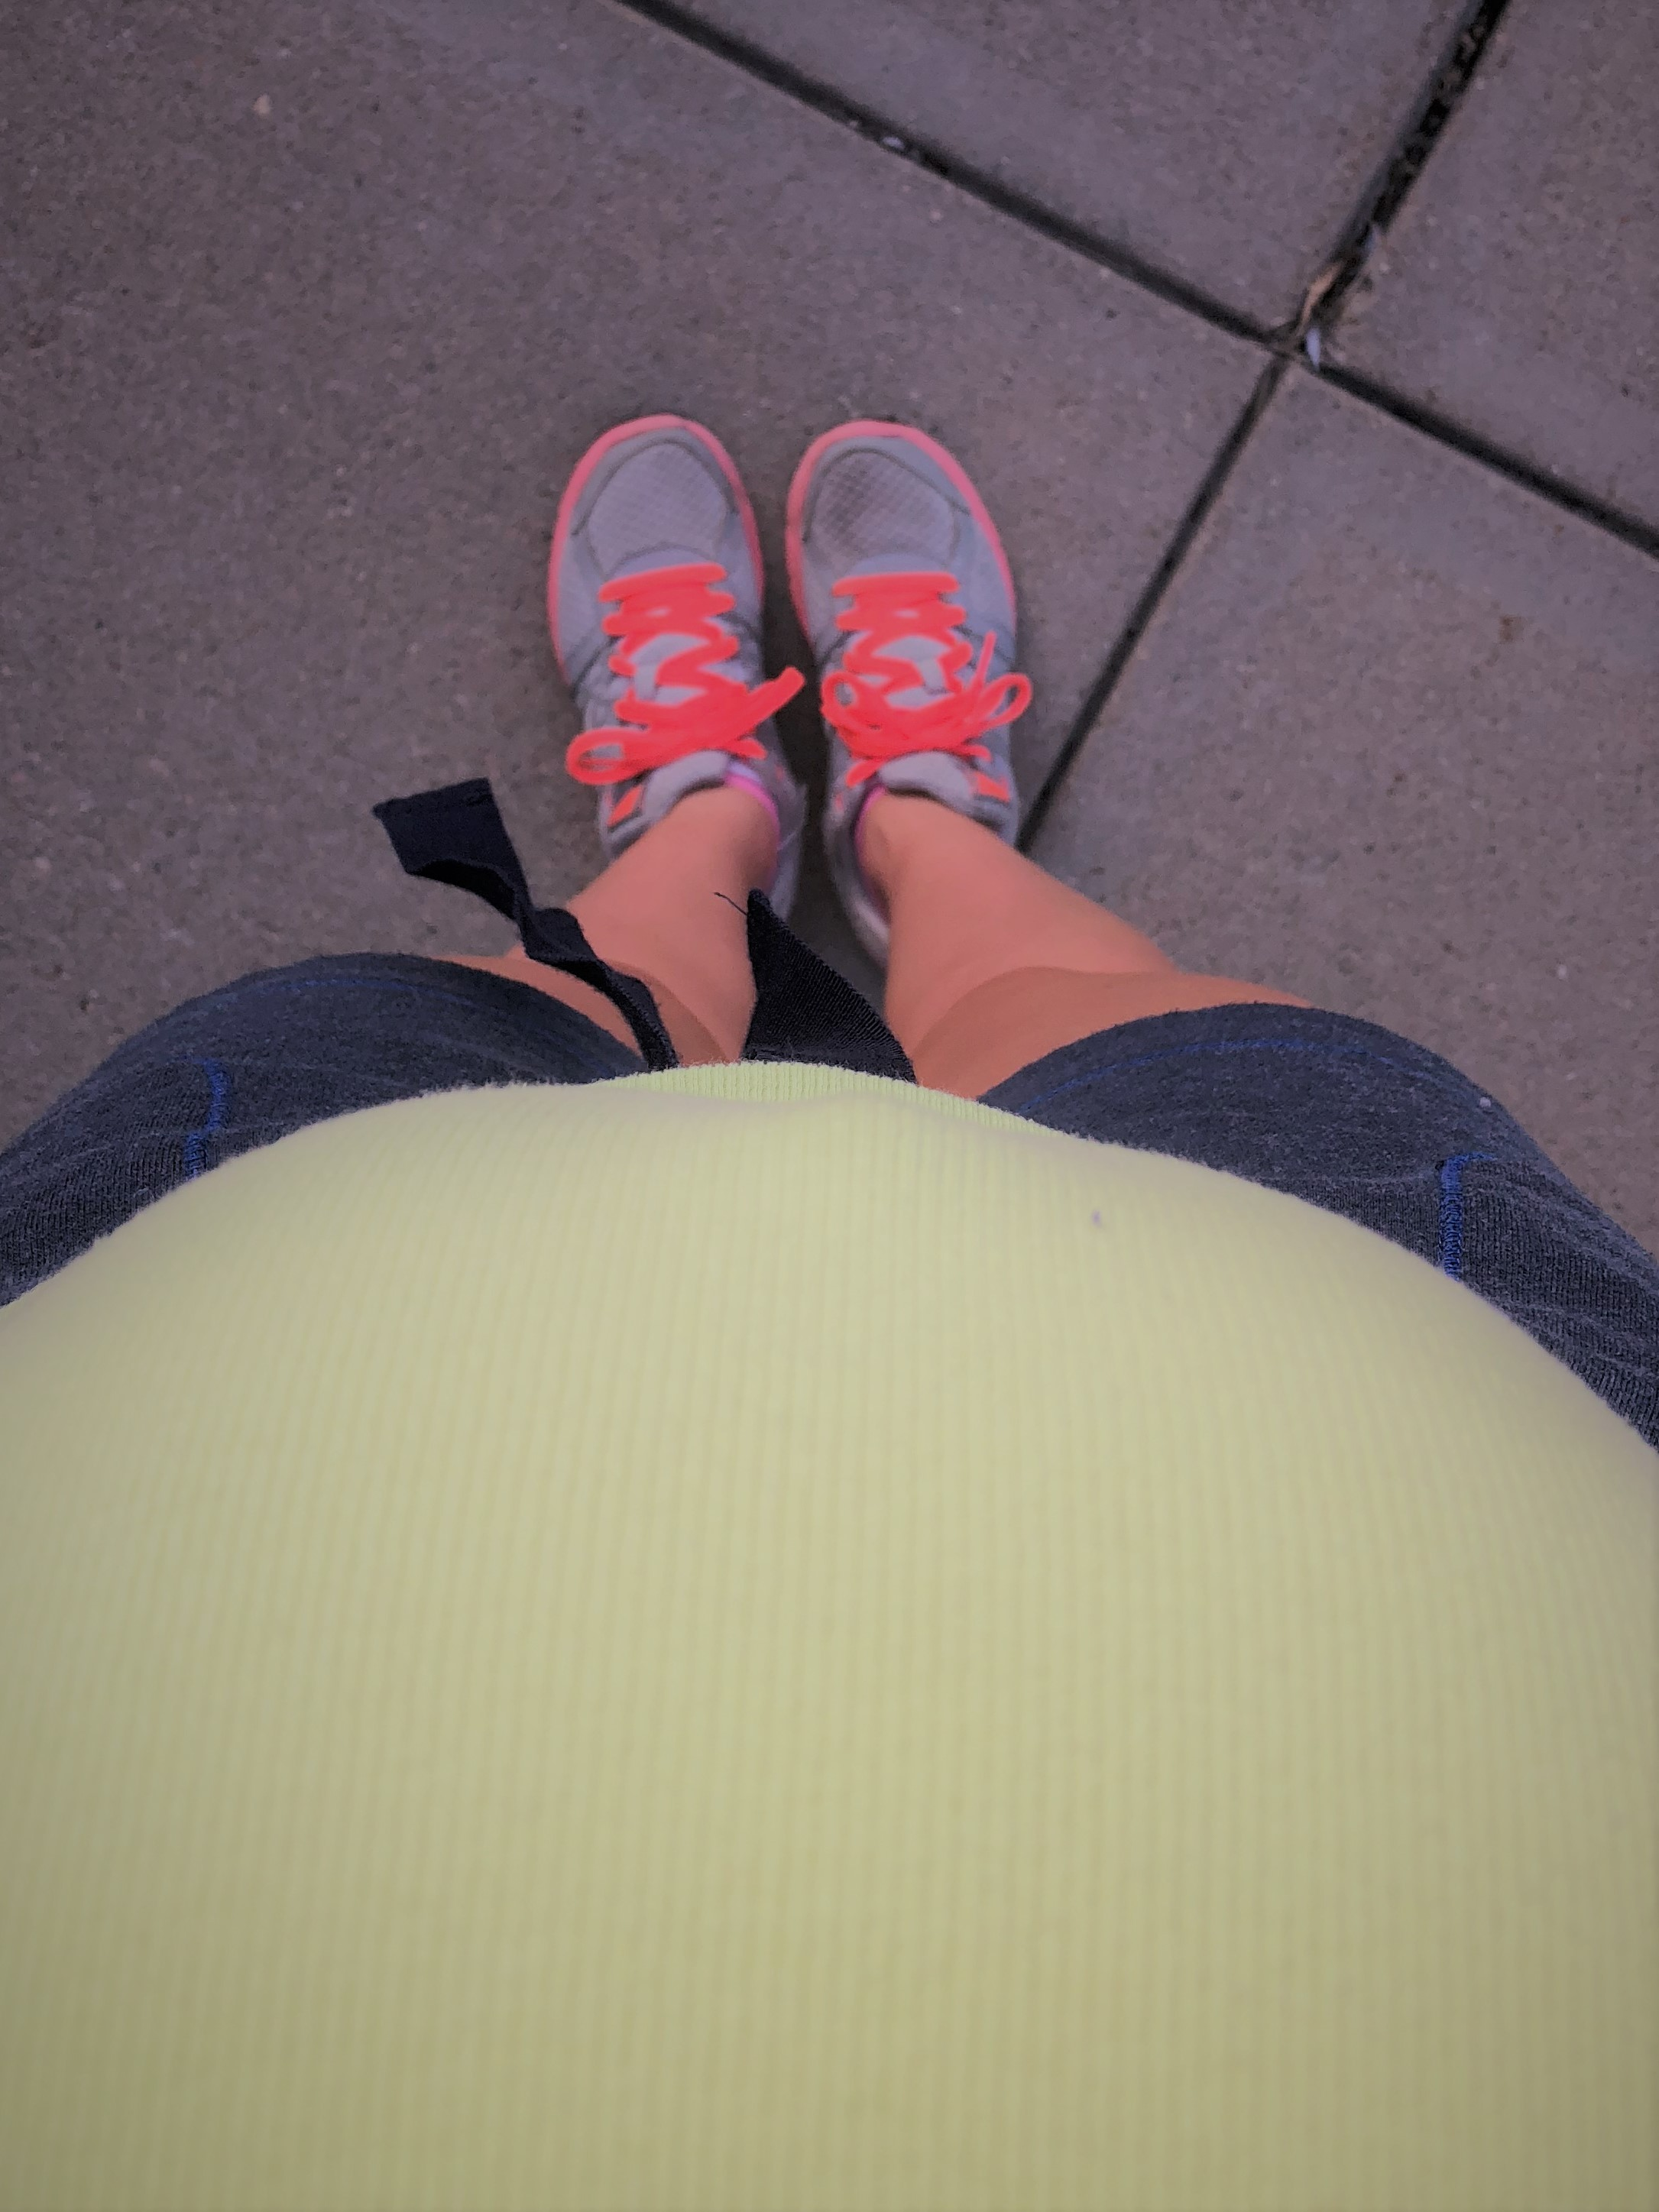 Me and my bump. Going for a walk.